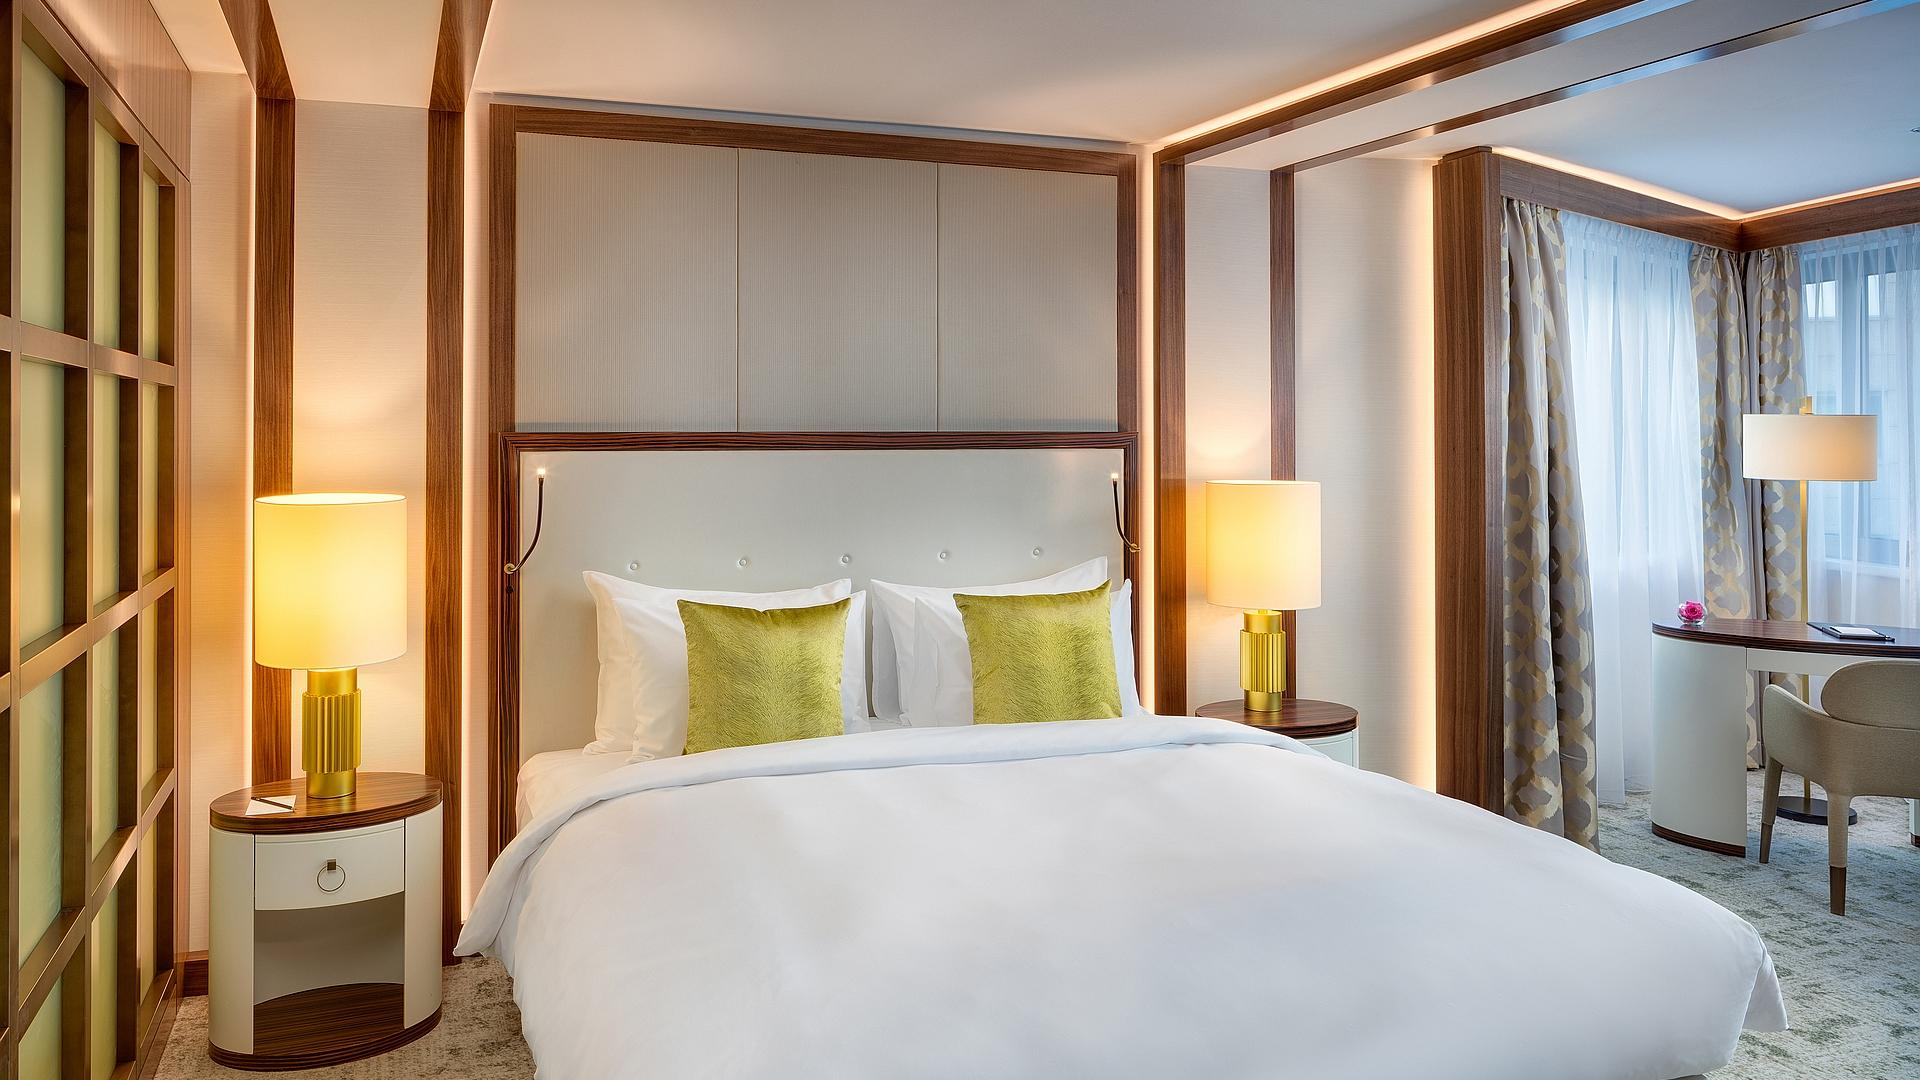 Premium Junior Suite - king-size bed | Hotel Corvinus Kempinski Budapest